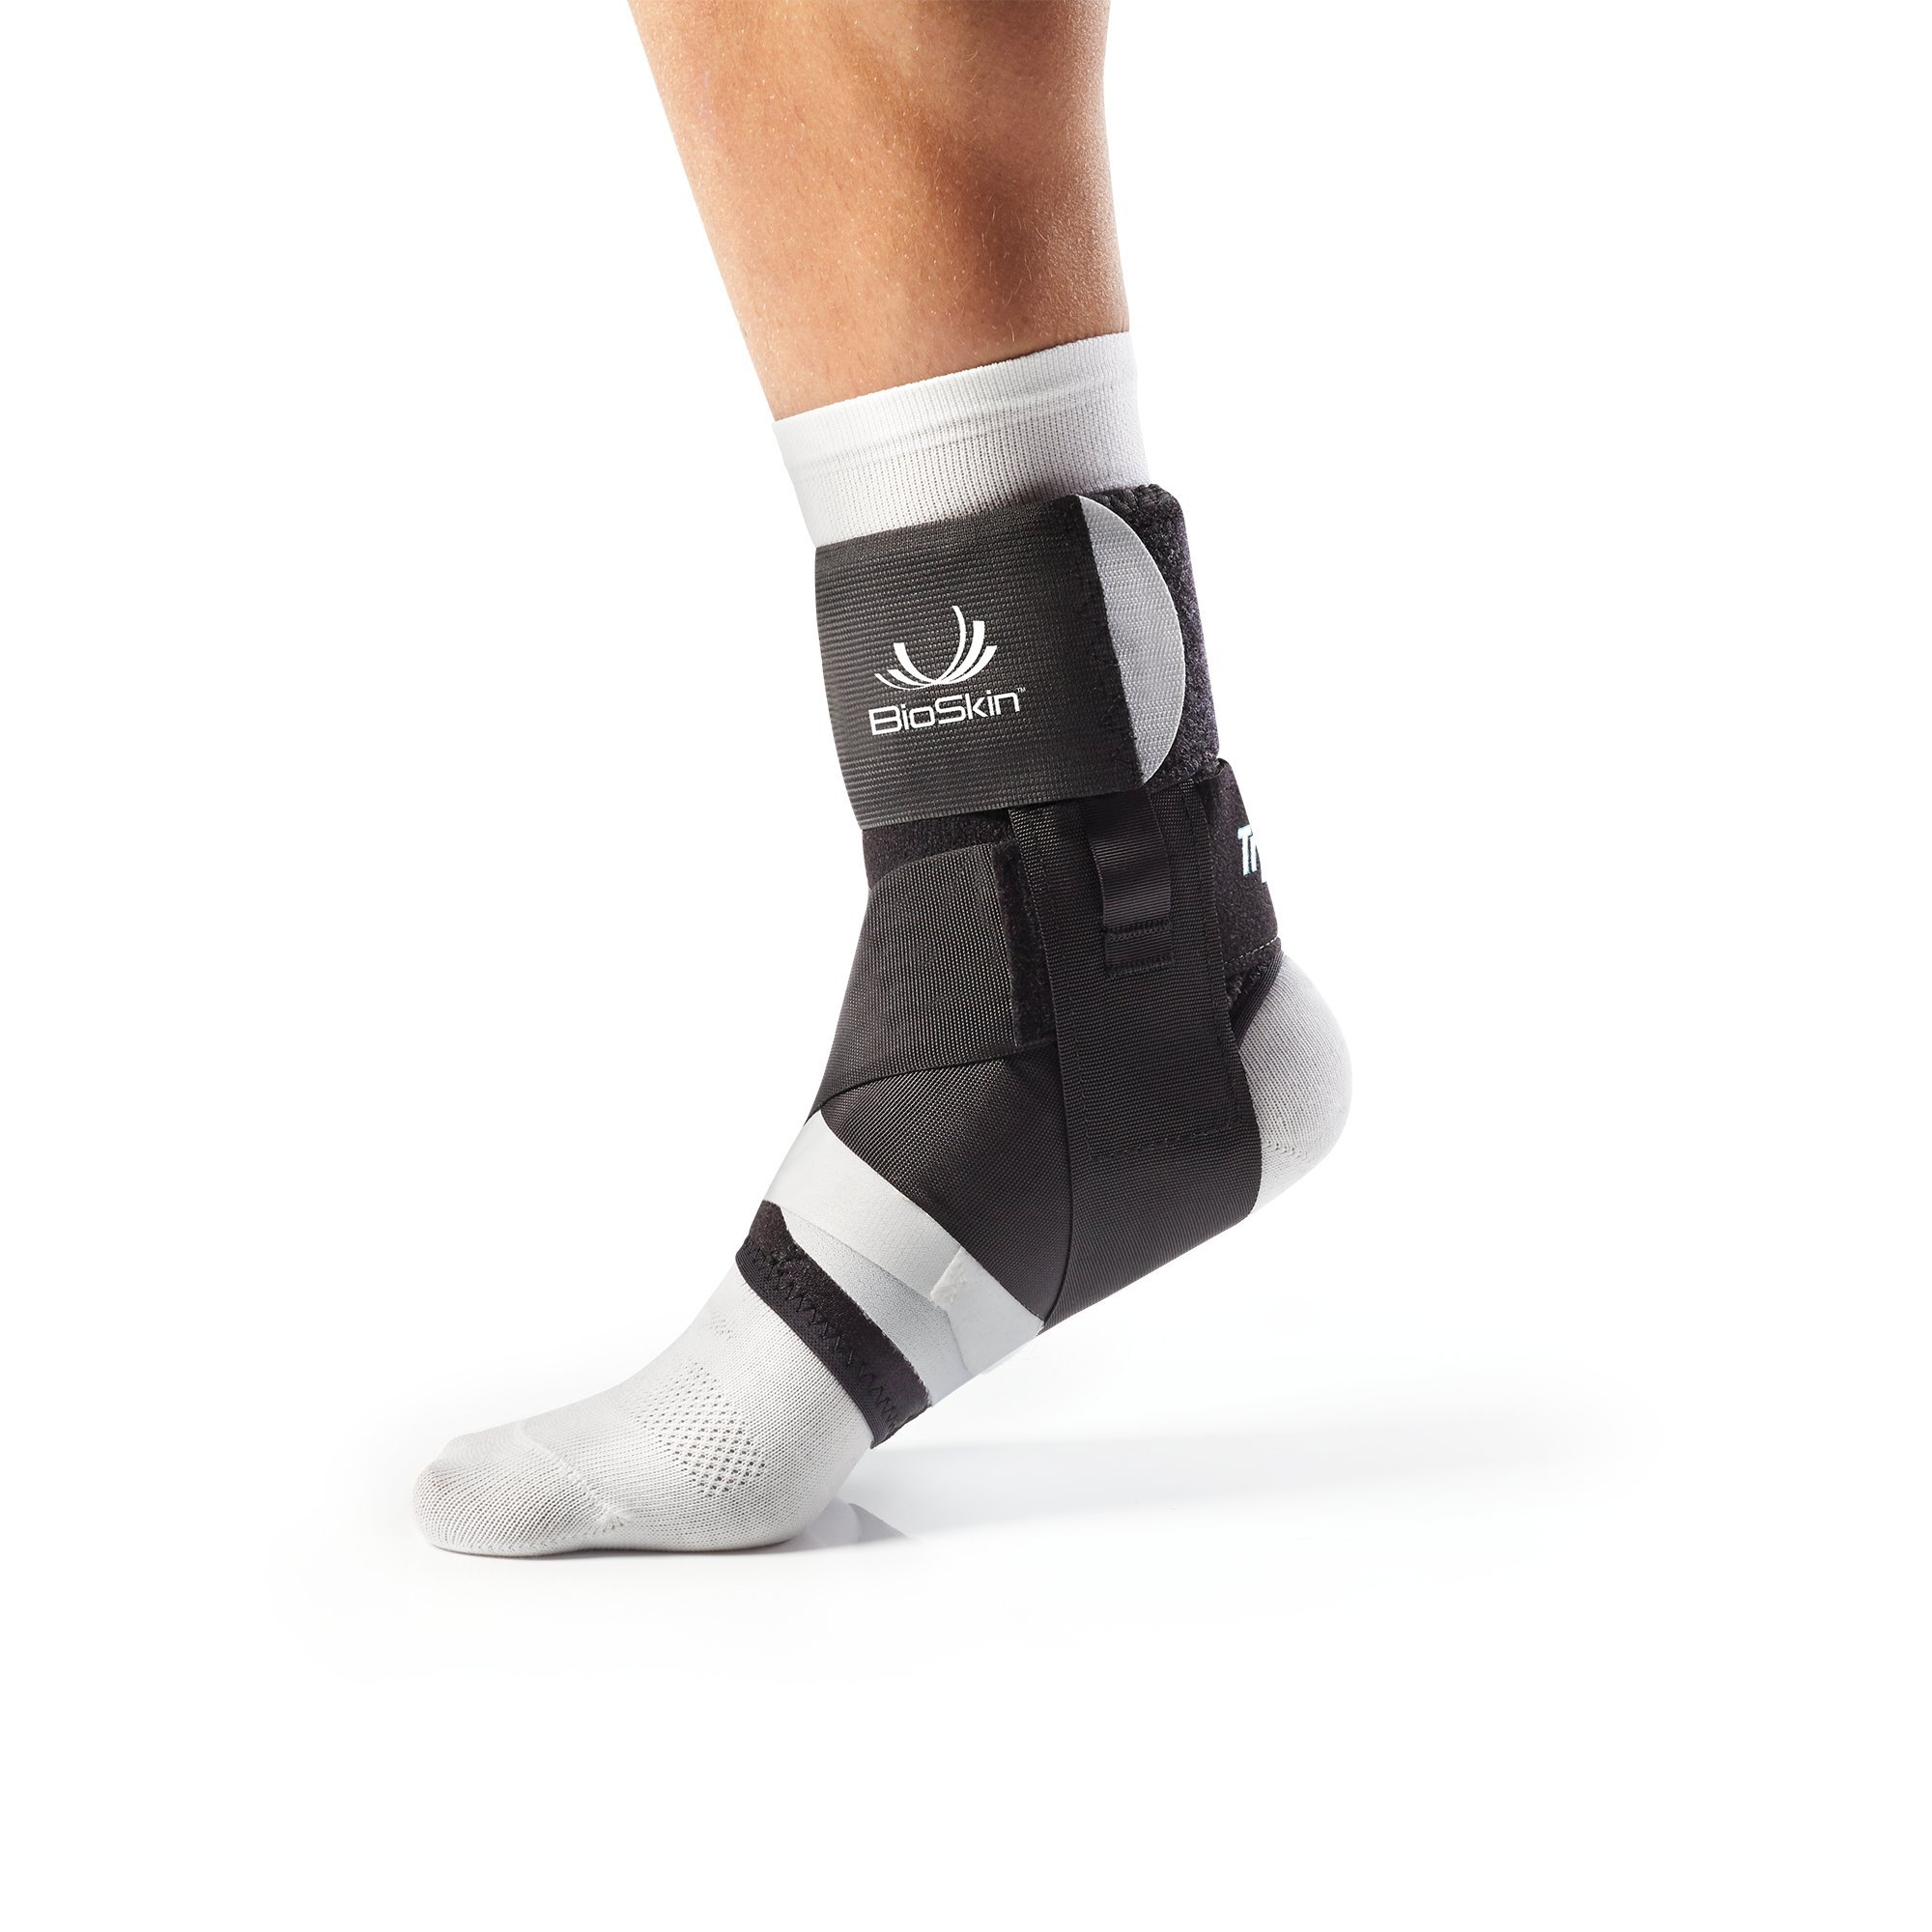 BioSkin Trilok Ankle Brace - Foot and Ankle Support for Ankle Sprains, Plantar Fasciitis, PTTD, Tendonitis and Active Ankle Stability - Lightweight, Hypo-Allergenic (XSmall) by BIOSKIN